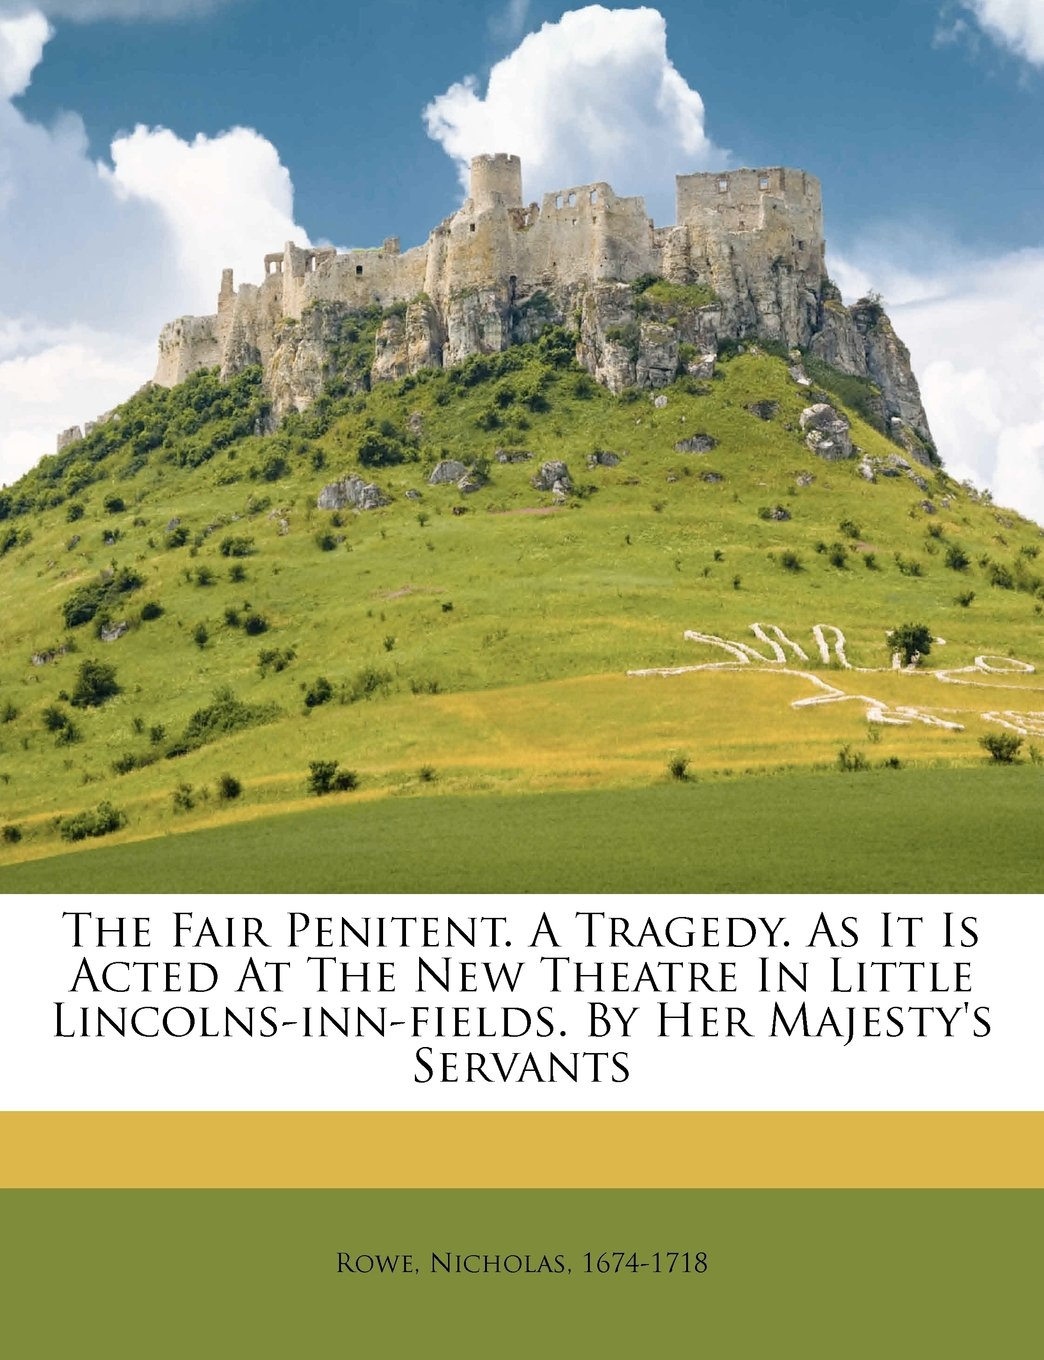 The Fair Penitent. A Tragedy. As It Is Acted At The New Theatre In Little Lincolns-inn-fields. By Her Majesty's Servants pdf epub